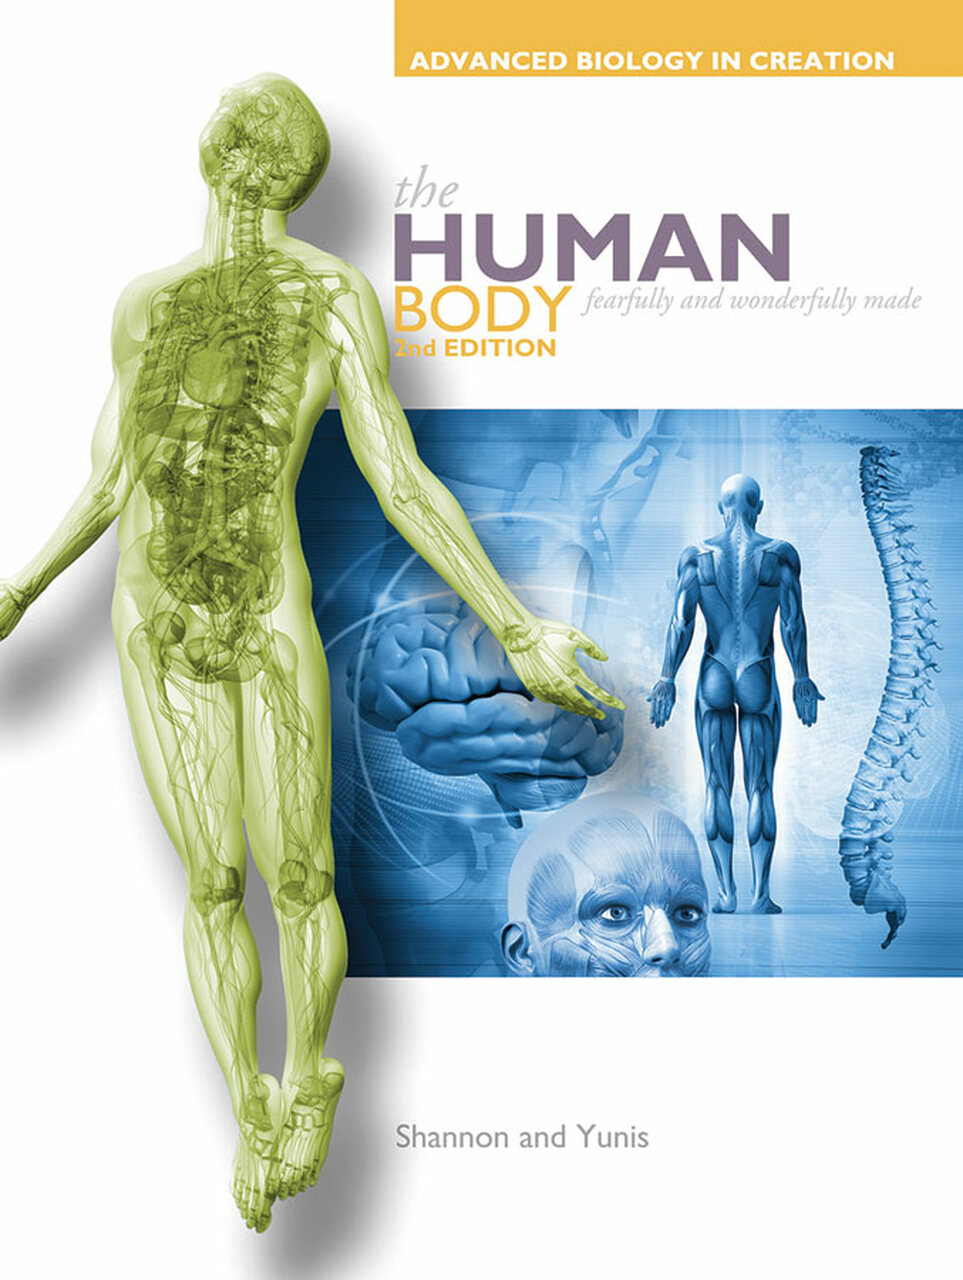 Apologia Advanced Biology Course - Human Body Tests & Book